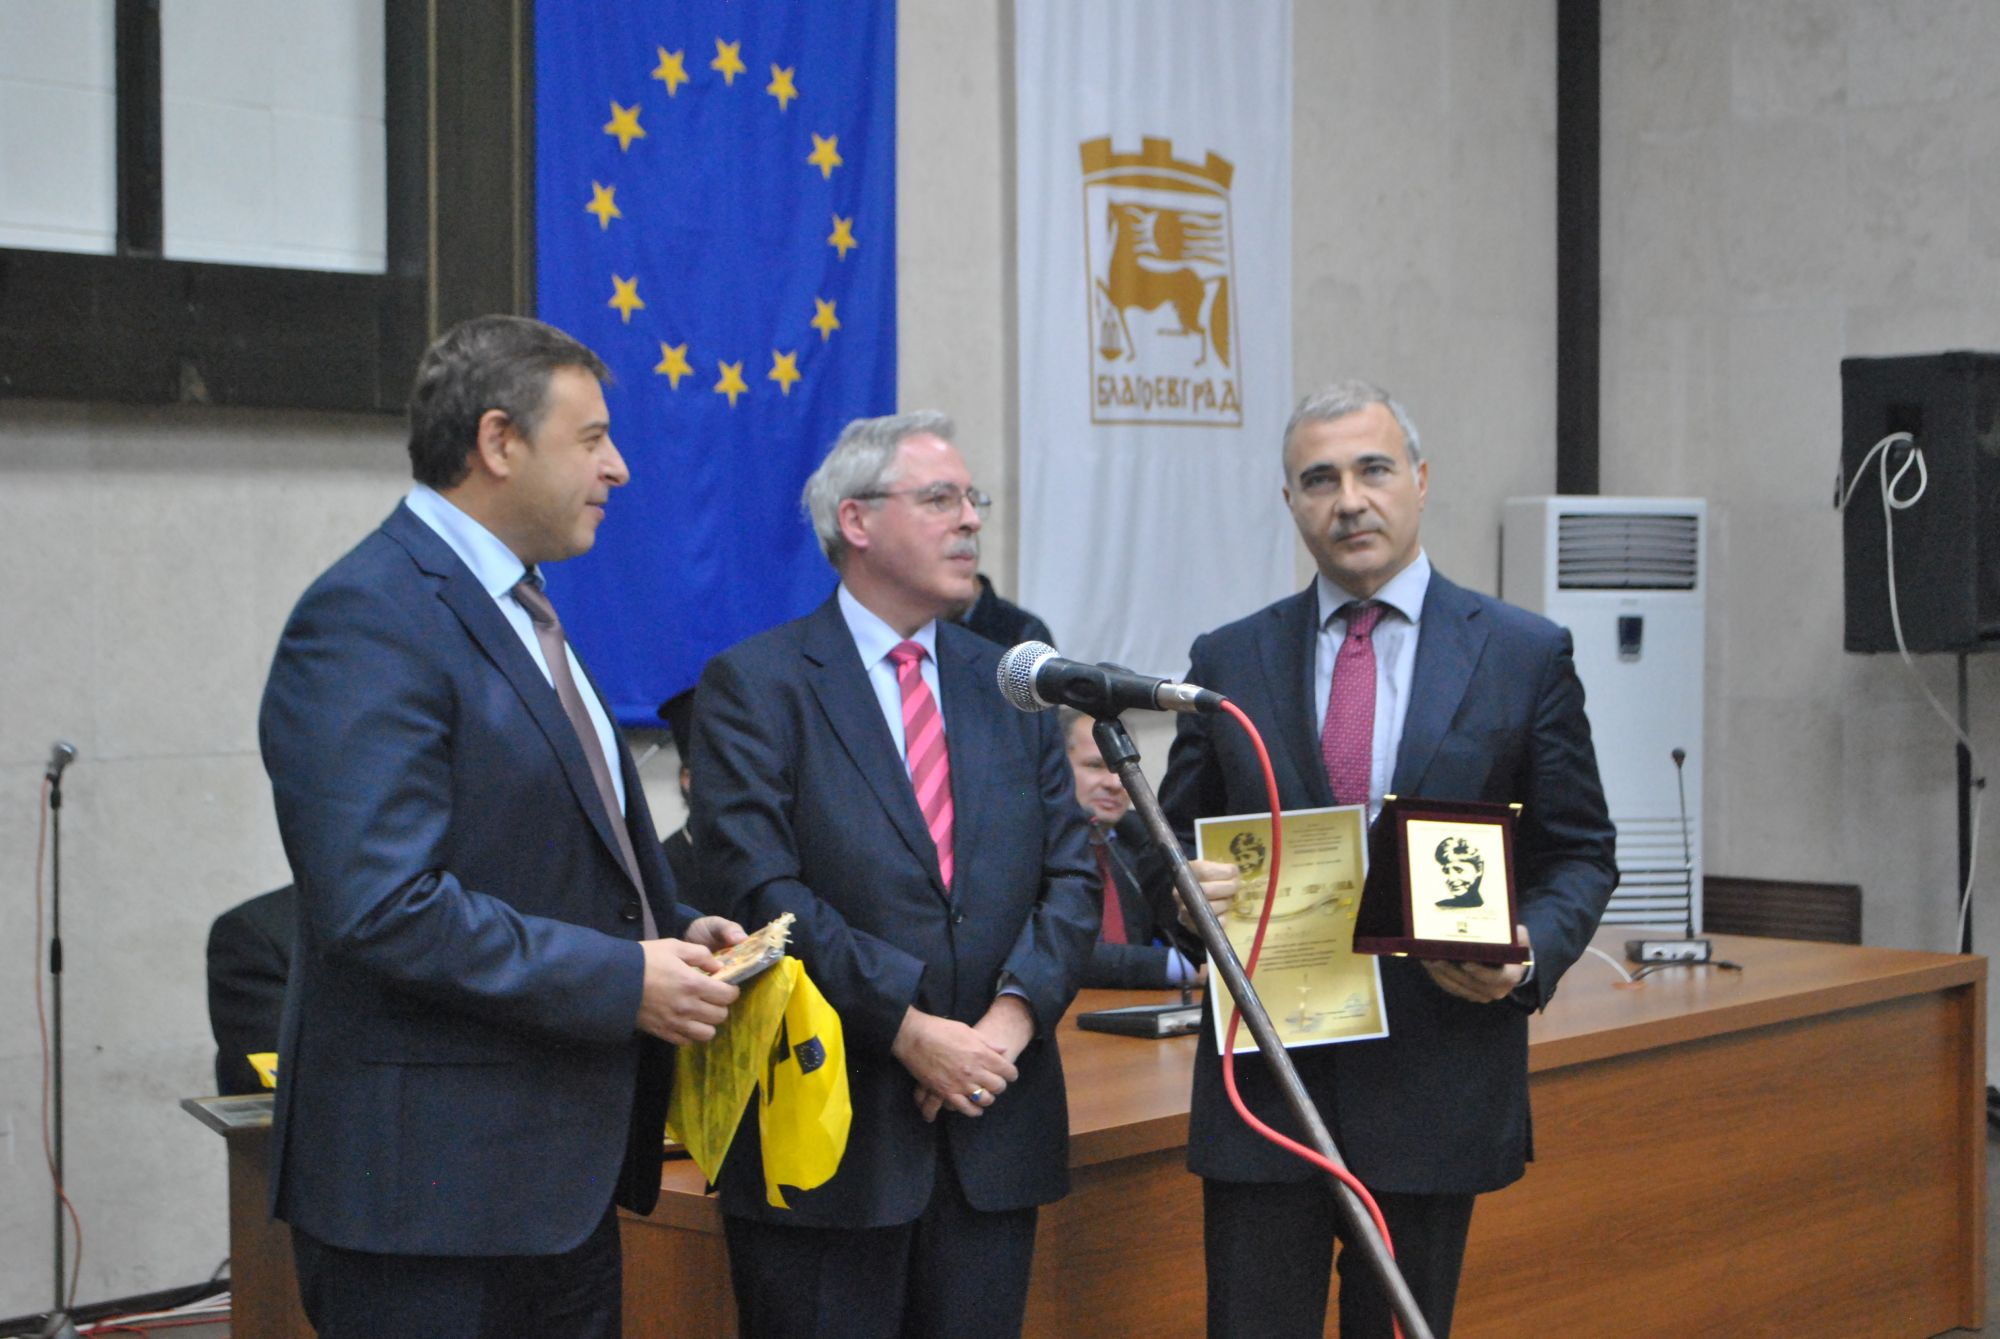 Read more: ECAD Representative Fabio Bernabei Awarded a Prize in Bulgaria